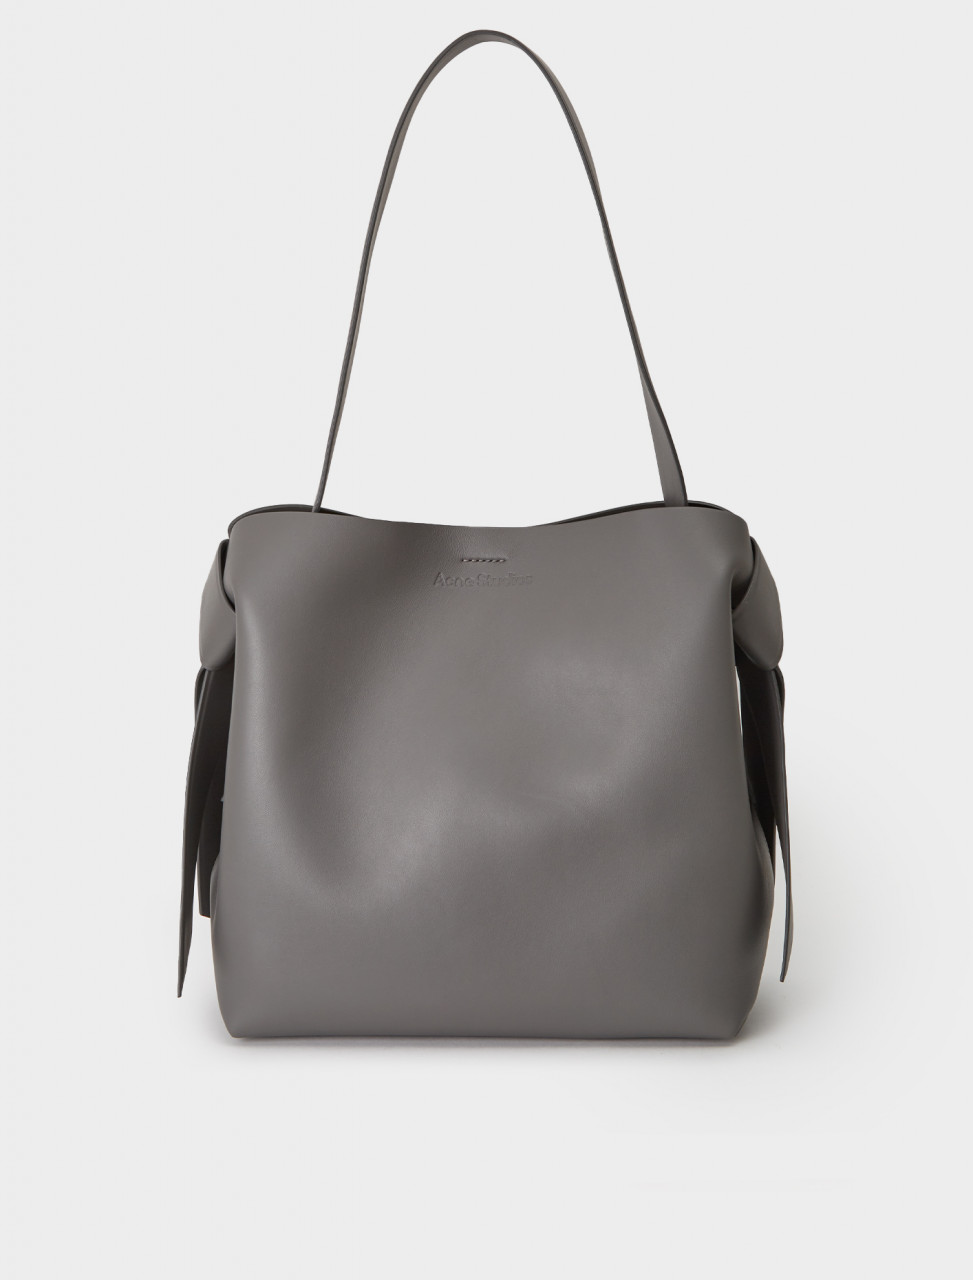 A10100-AA3 ACNE STUDIOS MEDIUM LEATHER HANDBAG DARK GREY